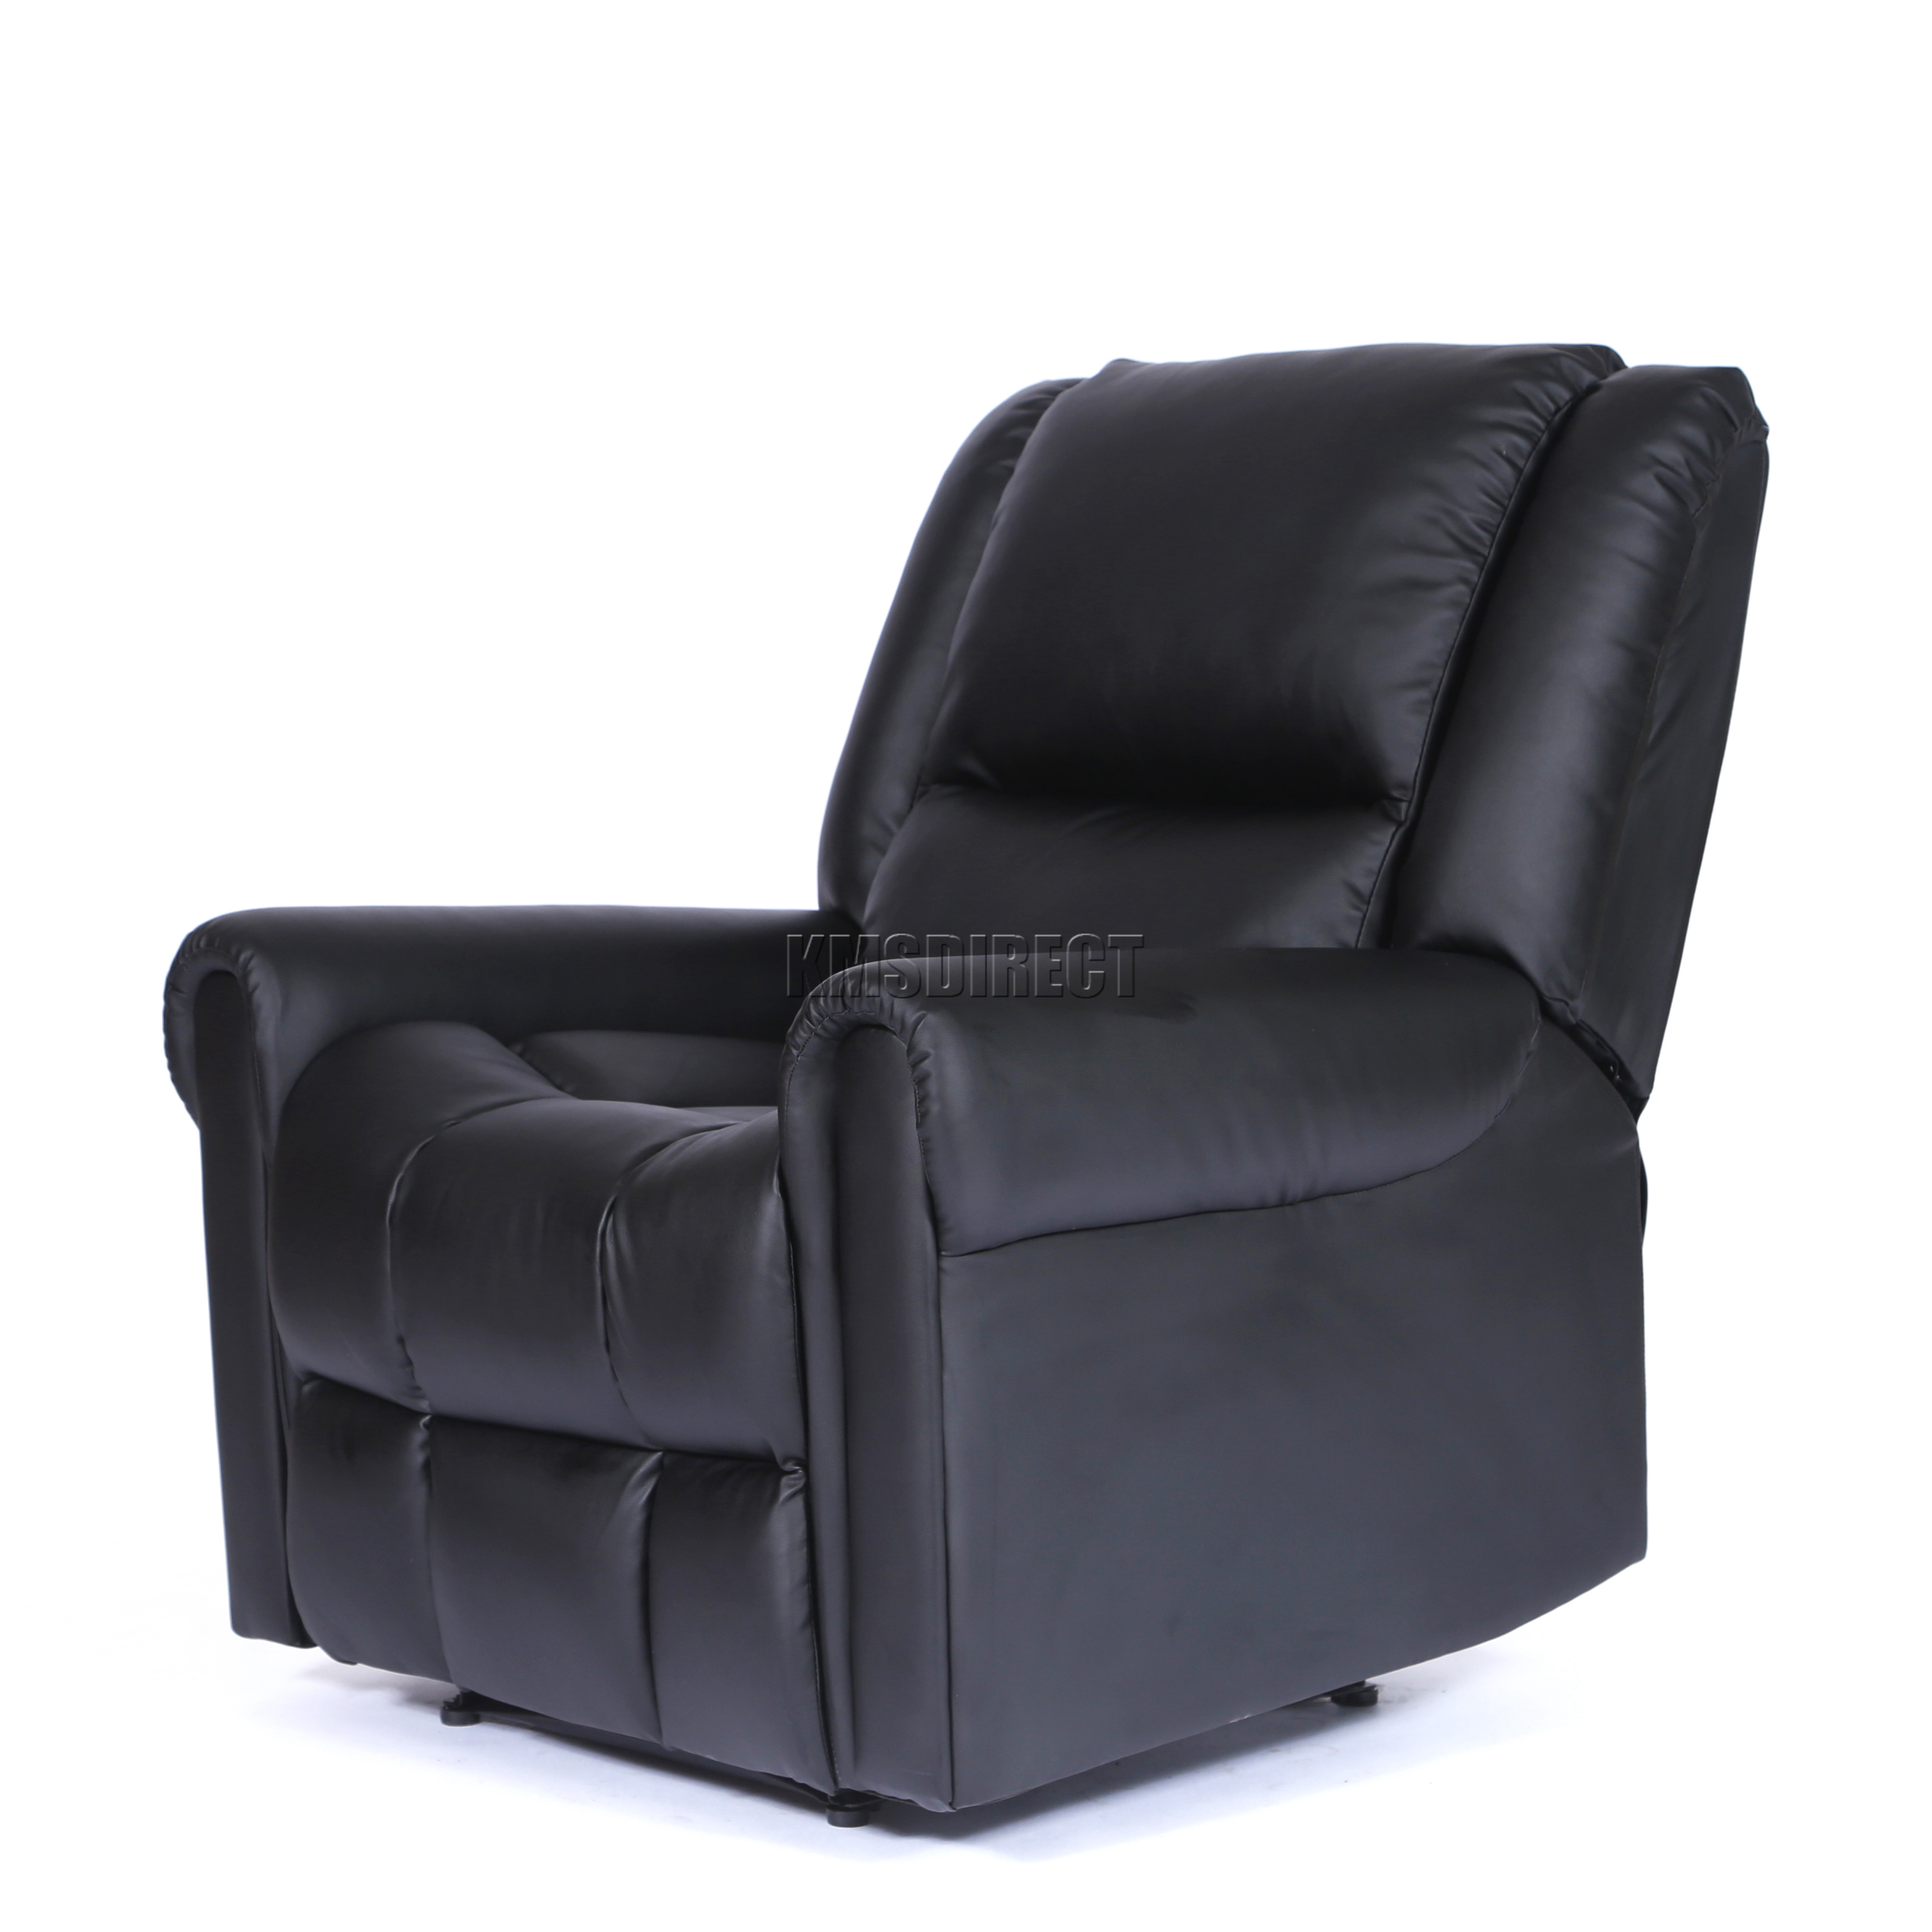 foxhunter luxe 1 place cuir cinema fauteuil inclinable canap chaise rs03 noir ebay. Black Bedroom Furniture Sets. Home Design Ideas